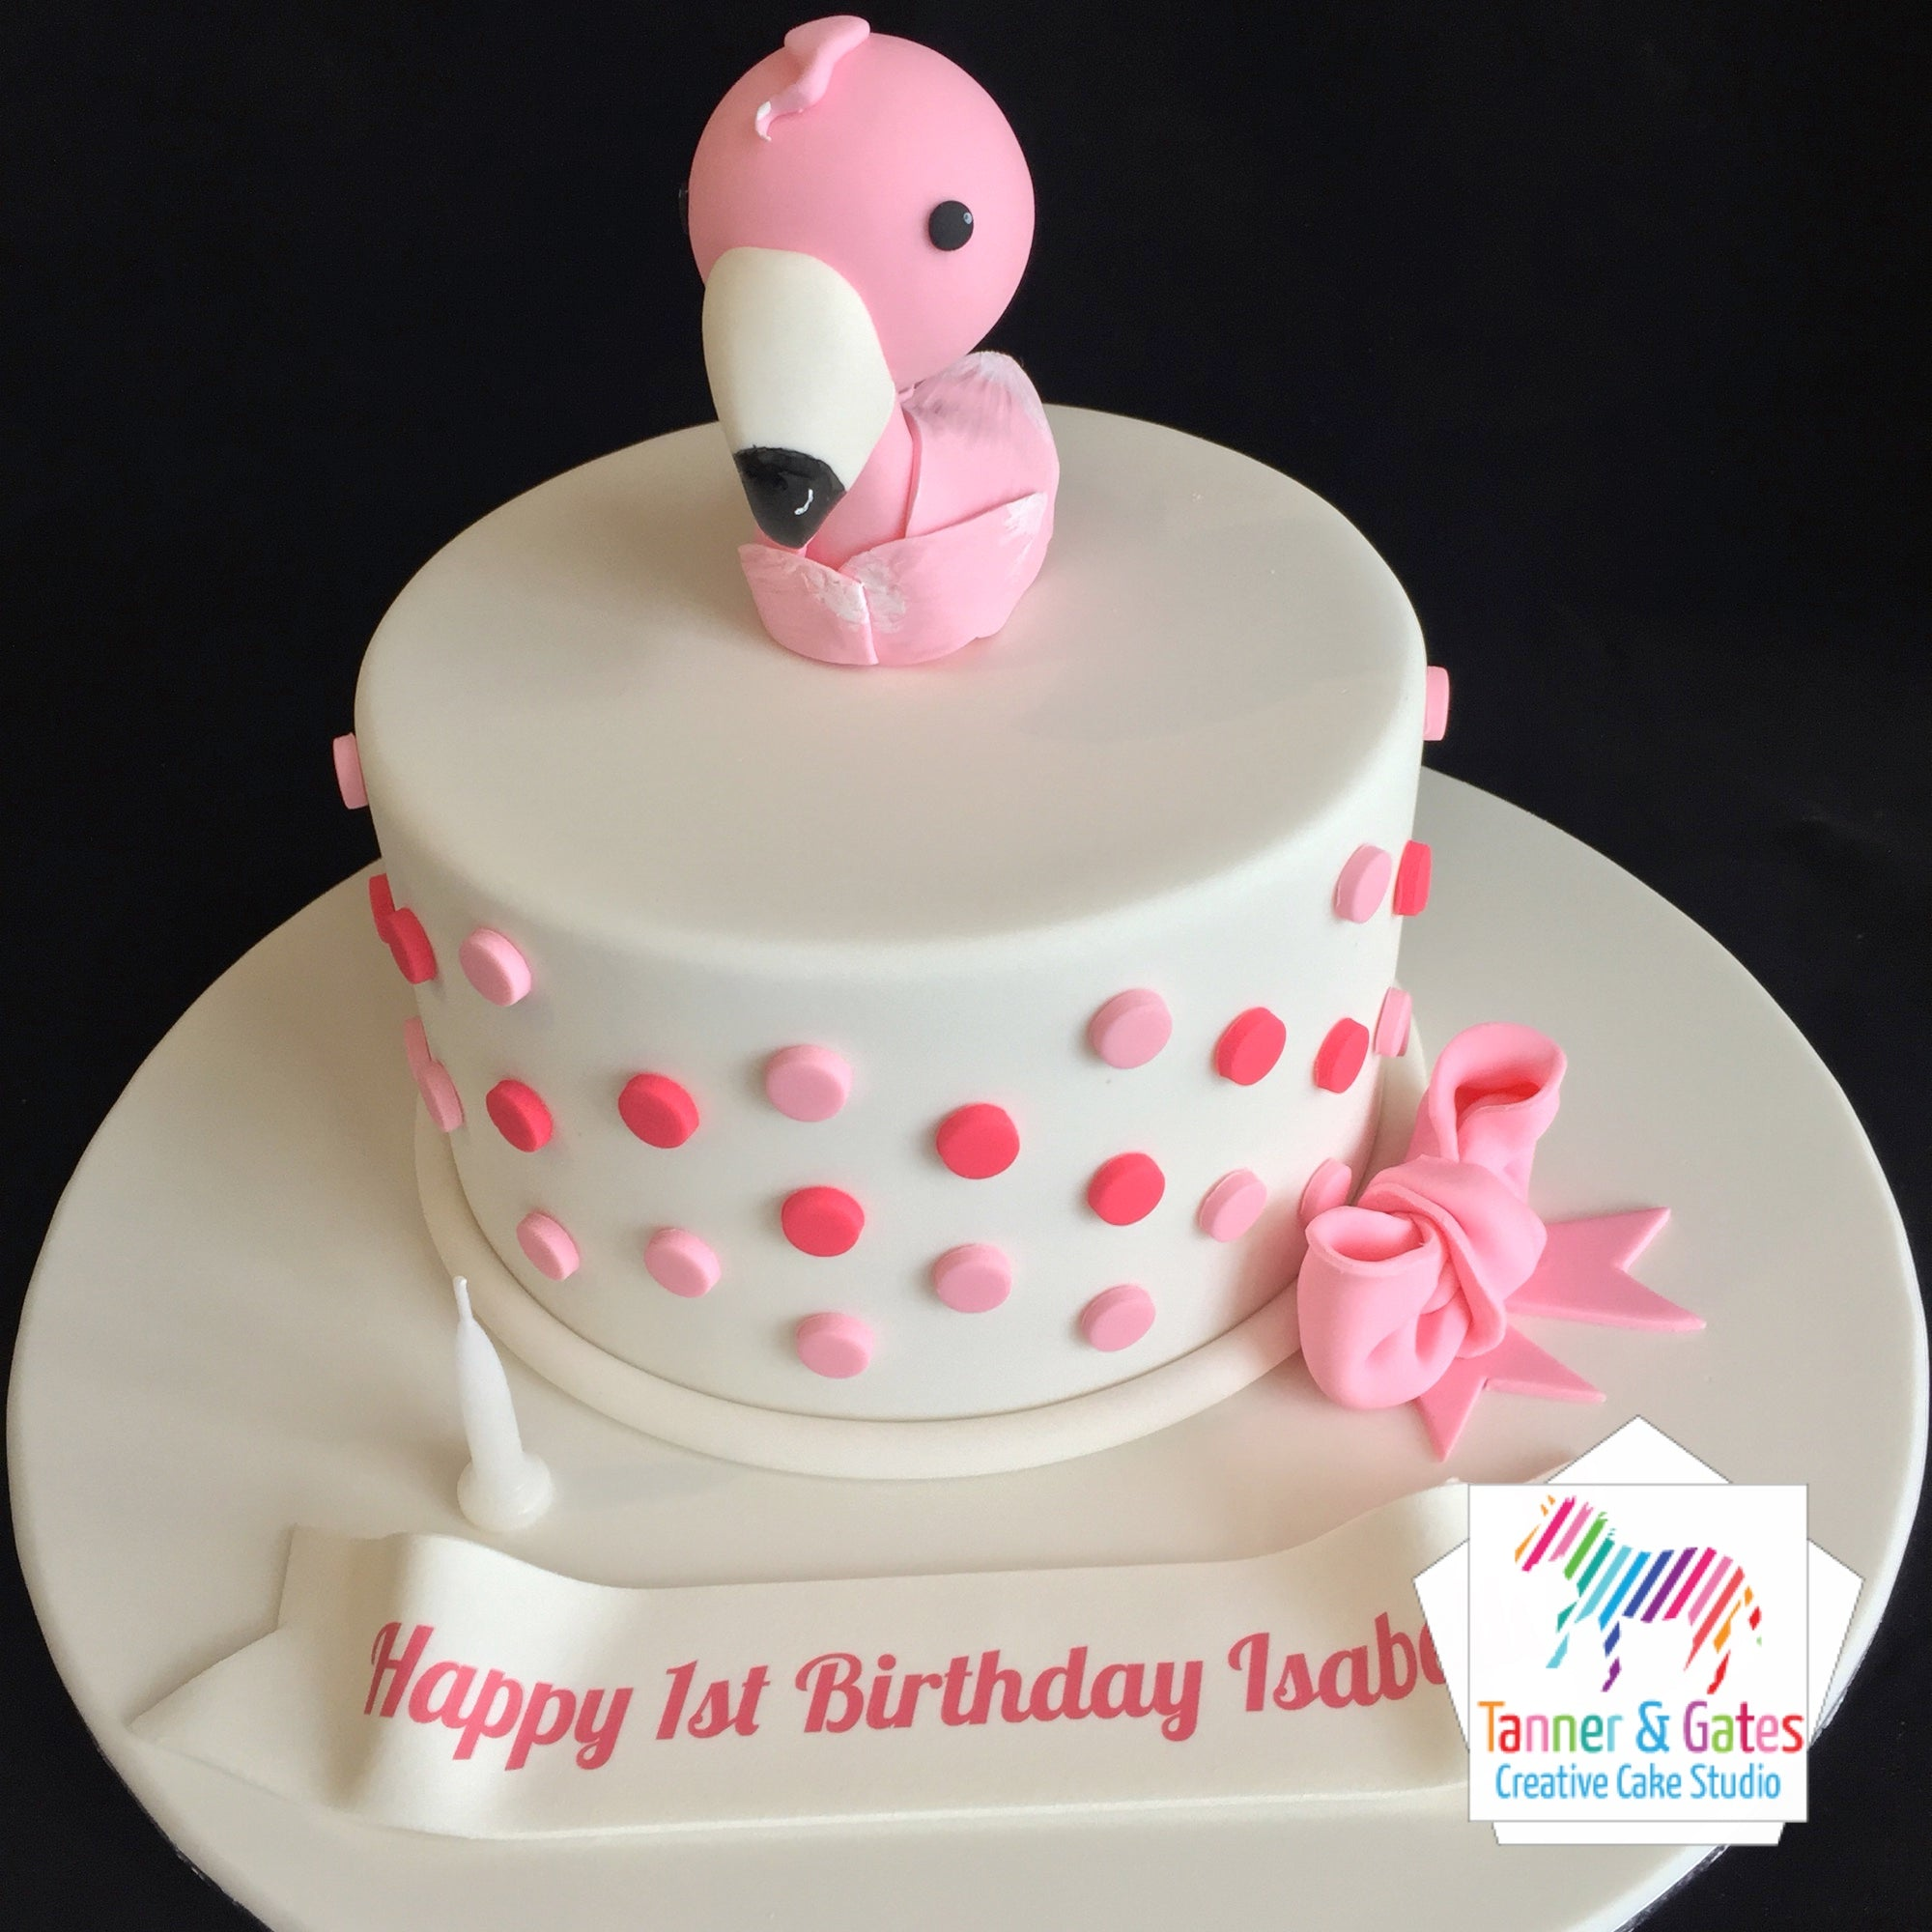 Fantastic Flamingo 1St Birthday Cake Sydney Tanner Gates Personalised Birthday Cards Veneteletsinfo